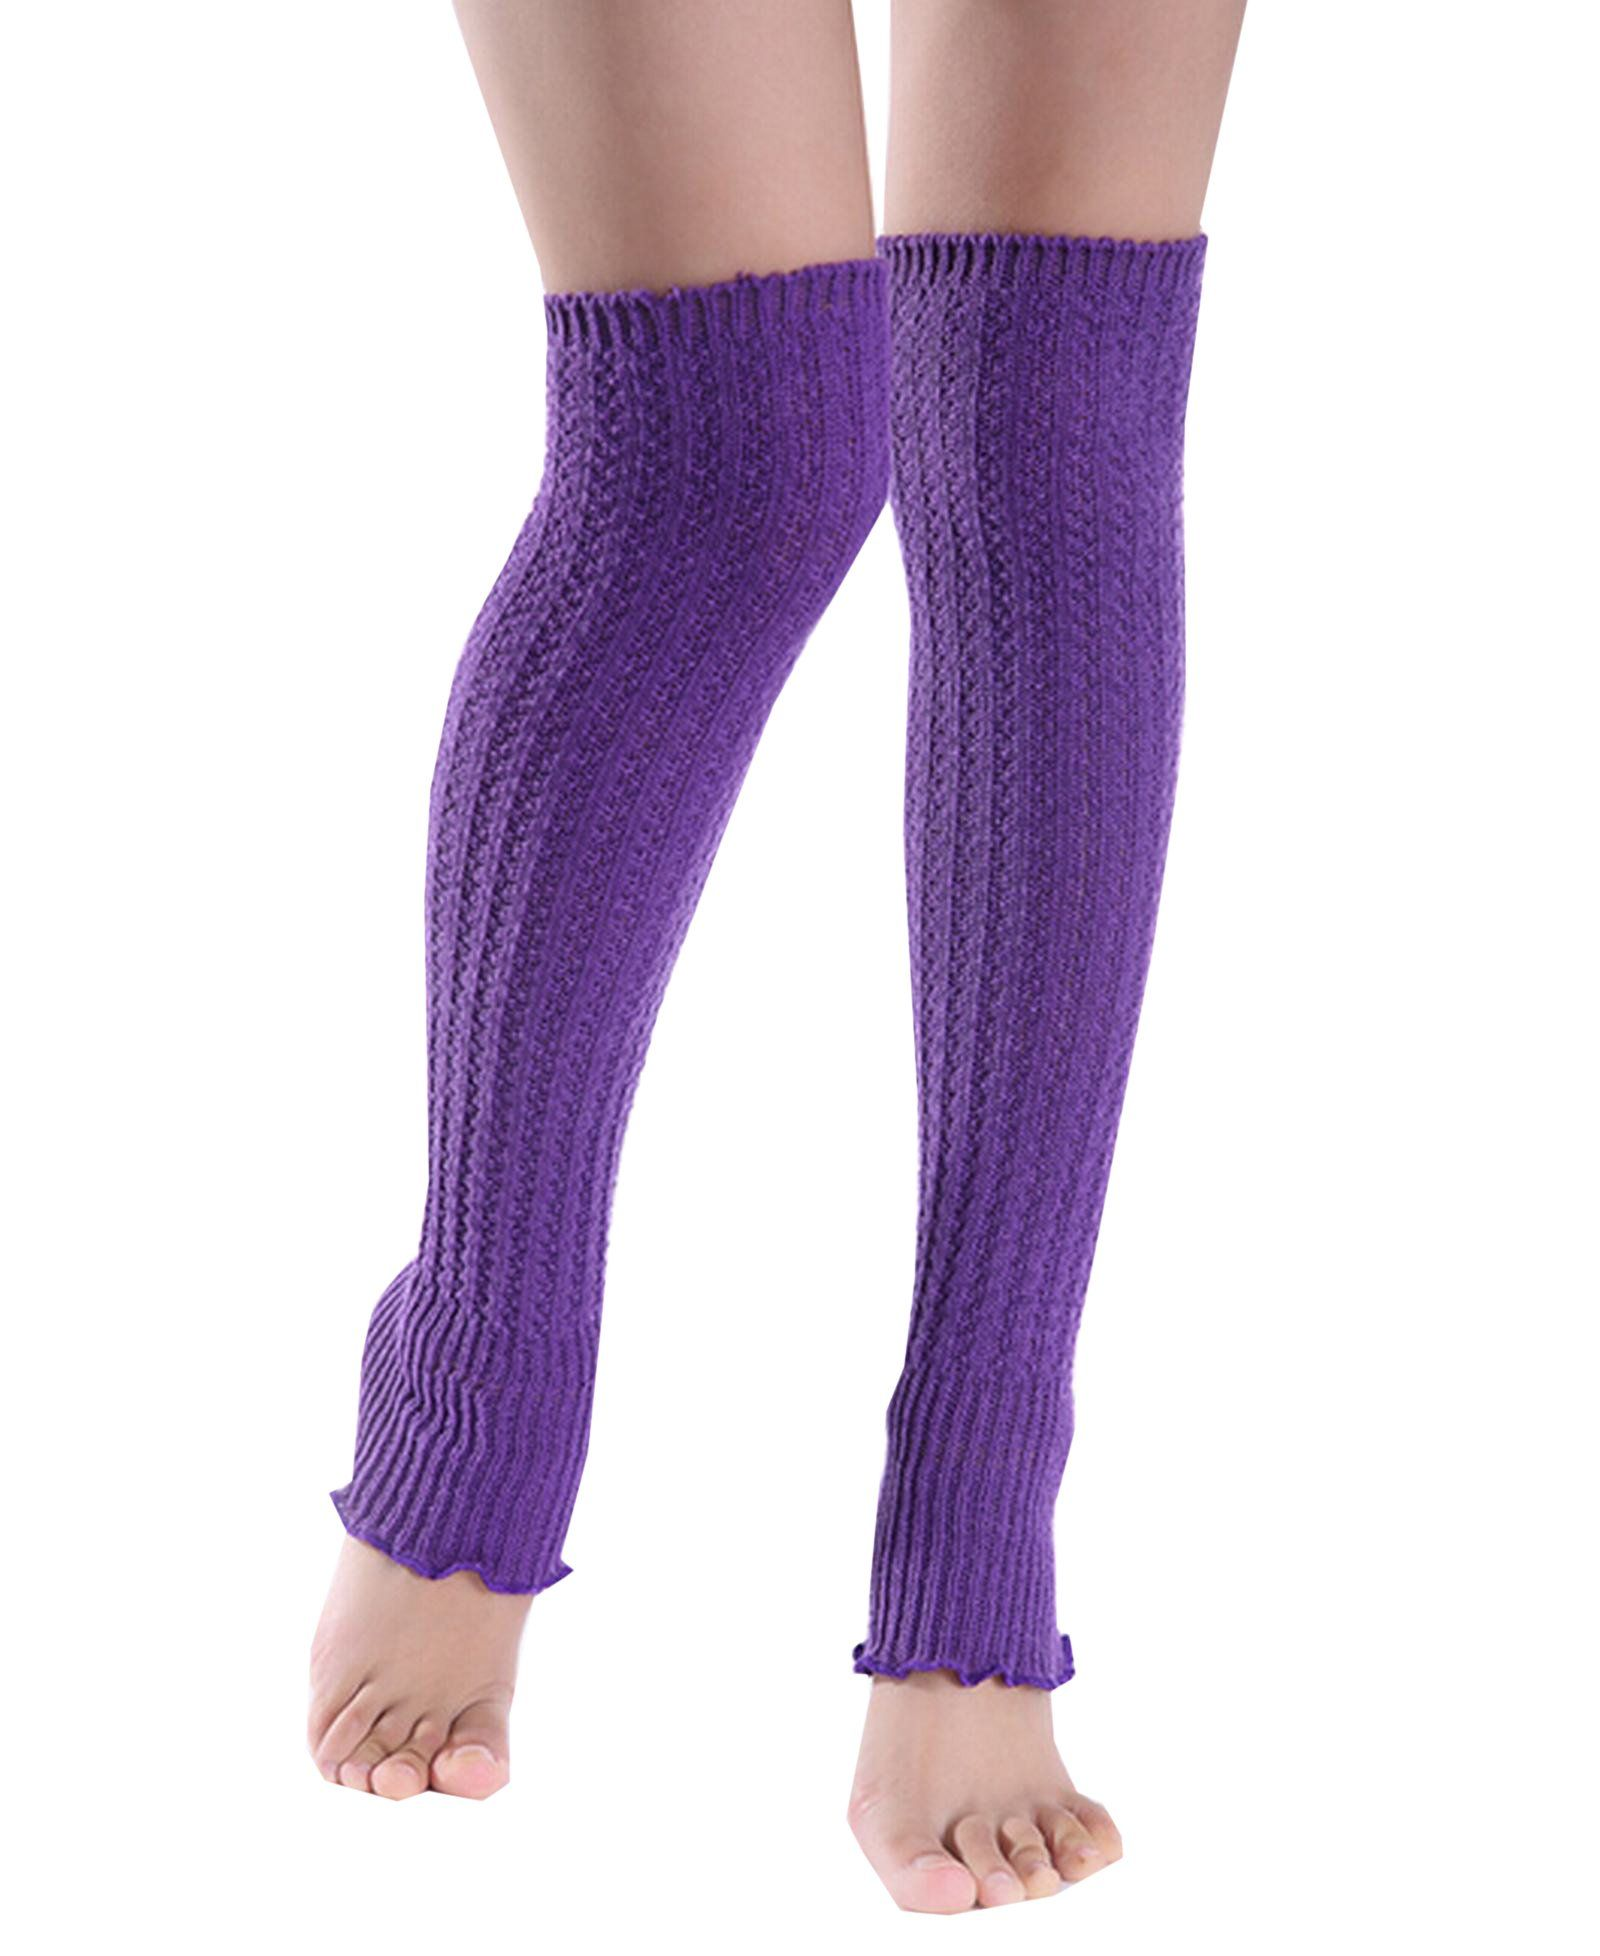 Xinliya Knit Cable Stocking Crochet Leg Warmers Boot Cover Kneepad Socks. Material:knitting. Size: length 20 inches, free size fit all. 100 % Brand New and Elastic. Package: 1 Pair of leg warmers. Wonderful to wear with boots, booties, over stockingss,kinny jeans, leggings, knee high boots, rubber boots or even heels and flats.